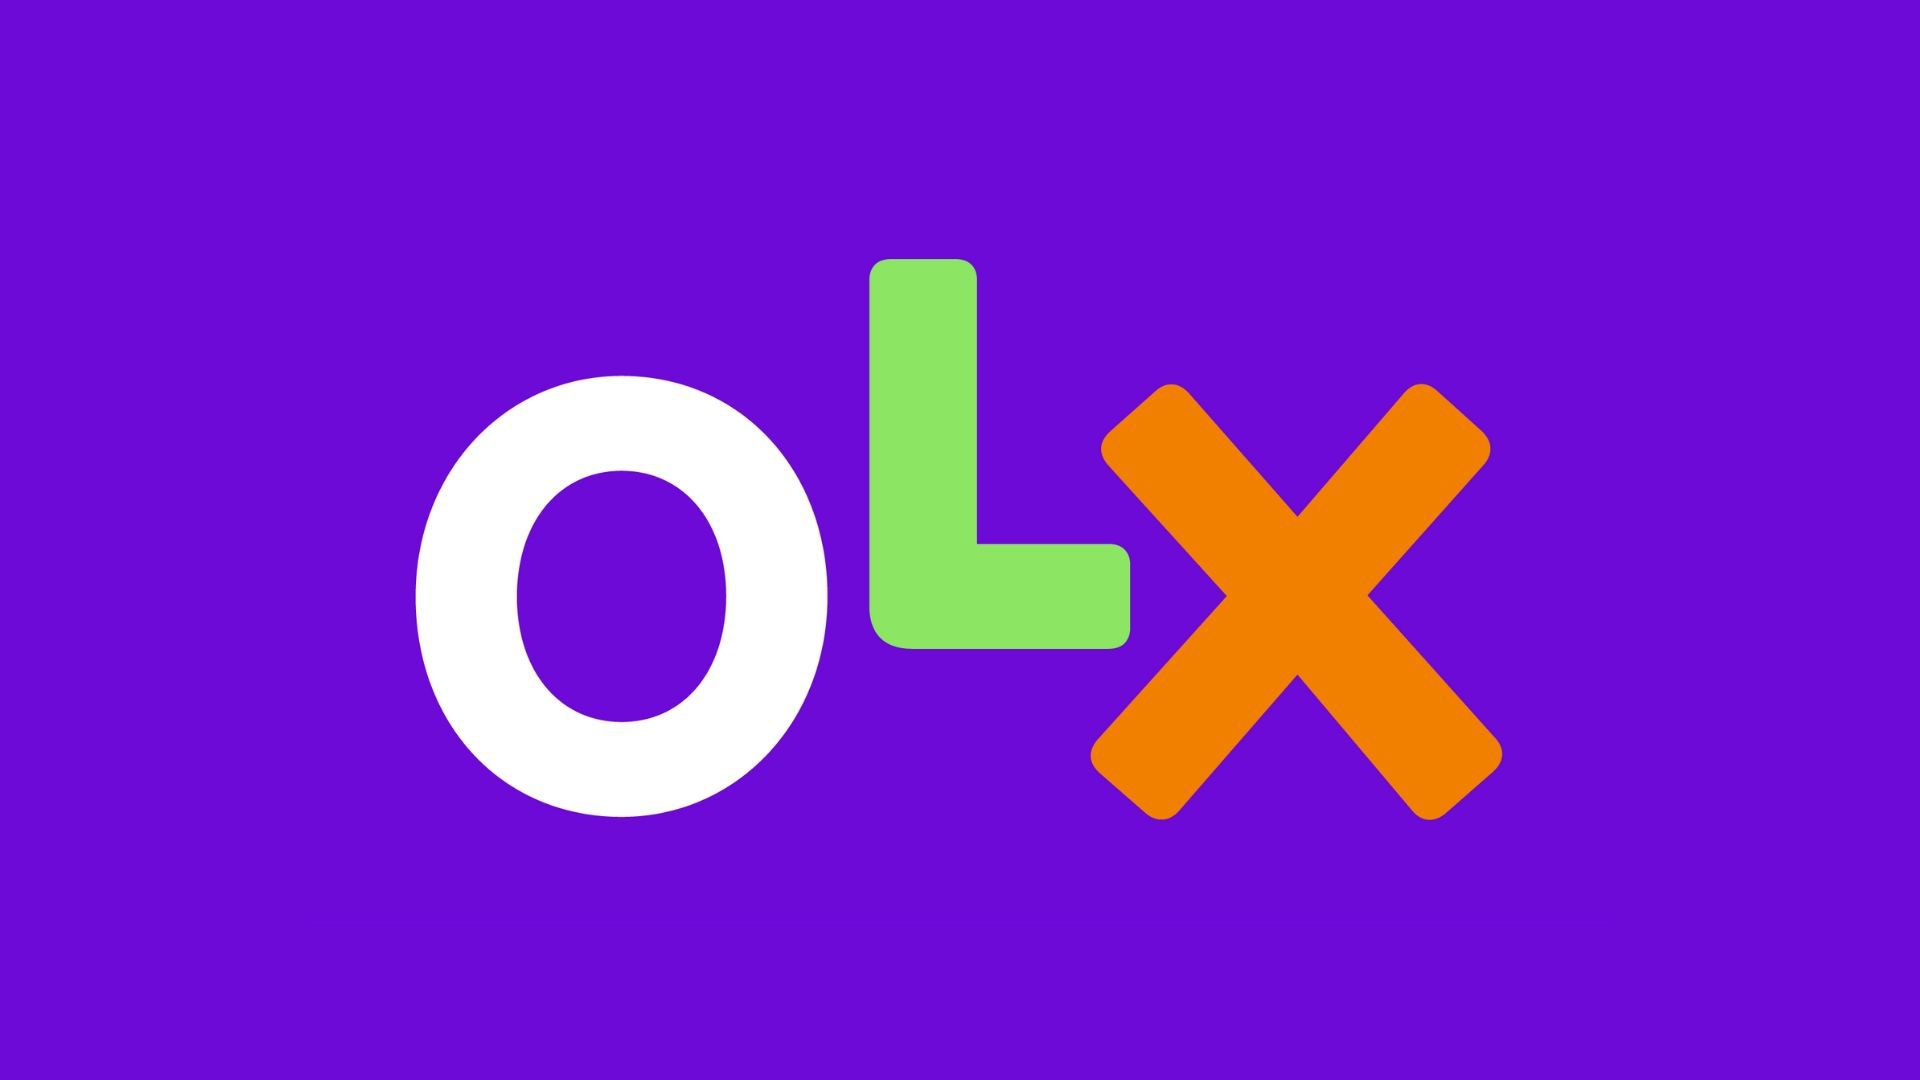 SWOT Analysis of OLX Online Exchange (OLX), also known as the OLX group, is an online marketplace that was established during the year 2006 and is being in operation in about 45 countries. It is a classified forum that is headquartered in the Netherlands. OLX is a leading online platform to buy, sell, and exchange various products like electronics, apparel, household goods, cars, bikes, etc. During the year 2014, the OLX platform has about 11 billion-page views; it sees about 200 million active users per month, 8.5 million transactions per month, and 25 million listings. OLX is a platform where the buyer and seller of an exchange item come on a common platform to buy and sell. For this, each of them should be a registered user of this platform. Once they are registered on this platform, the seller can place their products with its features. Once the seller posts their products, people who are registered on this platform can view the details shared by the buyer. This platform has a unique feature wherein the search is tuned as per the location. Buyers and sellers in the nearby area can see each other on the platform and communicate using messaging services. The SWOT analysis of OLX differentiates all the main strengths, weaknesses, opportunities, and threats that give guidance to the company to scale up more. Readout this article, to get an understanding of where OLX stands. The SWOT analysis of OLX indicates the strengths of the brand in which the brand is good and what differentiates it from its competitors, its weakness that stops the brand from performing well and should focus on to improve. It lists its opportunities that the brand can use to increase its market share and brand value. It also throws light on the threat that has the potential to harm the brand. To make sure that OLX meets the long-term competitive advantage, it must address the various concerns highlighted in the SWOT analysis of OLX. Let us discuss on the SWOT analysis of OLX. Strengths in the SWOT Analysis of OLX 1) Large Presence – OLX has its presence in more than 100 countries. This is an excellent strength for the brand. Having a significant presence in many countries would see many users created on the platform. When there are more users on the platform, it means that people make use of this platform to buy and sell. 2) Brand Image – OLX has a strong brand image and has about 11 billion page views. Also, it sees about 200 million active users per month, 8.5 million transactions per month, and 25 million listings. This shows that the brand is visible across the country, and it is known to many people. Having a strong brand image is the main strength of the brand. 3) Strong Backup – OLX sees a strong back up by Naspers. It has a lot of experience in working with various eCommerce giants. Because of this, there can be a lot of input from the backup. This is the main strength of the brand. 4) Strong Advertising Campaign – Yet another strength of the brand is its strong marketing efforts. It has an excellent marketing strategy, and its advertisements are popular on television, radios, many online channels, etc. Due to its marketing efforts, its brand value has increased. Many people are aware of this online platform and use it. Its advertisement is quite popular in online media. 5) Strong Vehicle Category – OLX has a strong place in the vehicle category. It sees many sellers placing ads to sell their vehicle, and there are many buyers to purchase as well. The vehicle category alone sees around 850 million page views per month. This is indeed a vast data and the main strength to highlight the brand. 6) C2C Market Leader – OLX seems to be India's market leader in the C2C business. This is also the main strength of the brand. It has fewer competitors and one reason to have many users on its platform. 7) No Specific Product – OLX has no limitations with regards to products. It has a massive portfolio of products where users can place their advertisements. 8) Business Model – OLX is one of the biggest free online classified platforms. Its business model is unique and presents it finely. It has an online platform where people buy or sell products. It is spread across many cities in India. 9) Many Functions – On the OLX platform, a user can easily design many rich advertisements with beautiful images. A user can also control the buying and selling activities in the OLX platform. It also has a feature where a user can display their ads on any social networking platforms. Users can access the OLX website from anywhere, and it also has an app to support. 10) Easy Availability of Products – This platform gives easy access to customers to get any products at less cost. Customers can access their beautiful websites with rich and featured listing. 11) Huge Market Share – OLX has managed to get about 60% of the online classified market share. This is a significant strength to the brand, and its traffic has also grown to 55 times over the past few months. Even, the OLX app has exceeded 3.2 million downloads in India. Weaknesses in the SWOT Analysis of OLX 1) Technology-oriented – OLX is heavily dependent on technology, and it lacks features to convert non-internet users as potential customers. This is a great weakness for the brand because the number of users would reduce. 2) Competition – There are many competitors from the offline mode as well. Many people try to sell their products using many other ways like WhatsApp, word of mouth, etc. This is also a weakness for the brand because the users would reduce. 3) No Quality Assurance – As many buyers and sellers meet online, and various discussions take place online, there are chances that the quality would go off. Till the buyer sees the product and understands its features and use it, there is no guarantee on the product. This is also a weakness for the brand. 4) Online Fraud – As OLX is entirely an online platform where many people meet online and discuss their sale and purchase, there is a chance that it can enter fraudulent activity as well. 5) Fake Ads - As OLX is entirely an online platform where many sellers post many ads, there are chances that people post fake ads as well. 6) Delay in Response – As OLX is entirely an online platform, it is dependent on people to log in to check for an update on their products. There would be a delay in response and for the product to be sold. Opportunities in the SWOT Analysis of OLX 1) Increasing Products – OLX sees more opportunity if they diversify on its products listing. It could have many subcategories of products, and this would bring more opportunity for sellers and buyers to glance through their requirements. 2) Increase in Offline Channel to Advertise – OLX can increase on its advertising channel by setting up an offline channel so that it could bring more brand awareness about its platform. This would also get more customers to get into their platform. The brand can brief the audience about its features and ways to use it. 3) People Choice – This platform is ideal for users who can wish to purchase their products as per their wish at less cost. So, there is a lot of opportunity for this platform. 4) Many Sellers – This platform brings a lot of opportunity for the sellers as they can sell their products and benefit out of it. With this, the online platform also sees more users using it, ultimately leading to huge traffic. 5) OLX Jobs – This online platform can increase its offering by listing job opportunities as well. This would see more chances of its business and improve the user count as well. 6) Real Estate Property – OLX has also entered listing of real estate and sees many opportunities to expand. Threats in the SWOT Analysis of OLX 1) Competitors – OLX sees many competitors at a similar domain, and this is a big threat for the brand. Investors have funded its competitor Quickr. So, OLX is at threat. 2) Offline Stores – Many offline stores sell second-hand products at a discounted price. This is also a threat to the brand. People would prefer to visit the offline store so that they could see and feel the product before purchase. Conclusion The SWOT analysis of OLX mentioned in this article has highlighted the main strengths of the brand that comes up from its brand value, having a significant presence in the country, having a strong backup, excellent marketing efforts, a strong presence in the vehicle category, being a market leader in C2C, availability of many products, having a unique business model, easy accessibility, and a considerable market share. The weakness of the brand is its technology-oriented platform where it is tough to get many non-internet users to the platform, having many competitions from the online and offline mode, no quality assurance, online fraudulent, fake ads, and delay in response. Its opportunities are seen on increasing its product listing, entering the offline mode to raise its brand awareness, having many sellers, allowing people to select their products, OLX jobs, and entering real estate business. It sees a threat from its many competitors like quickr, eBay, and many more, and many of the offline stores that sell second-hand products.